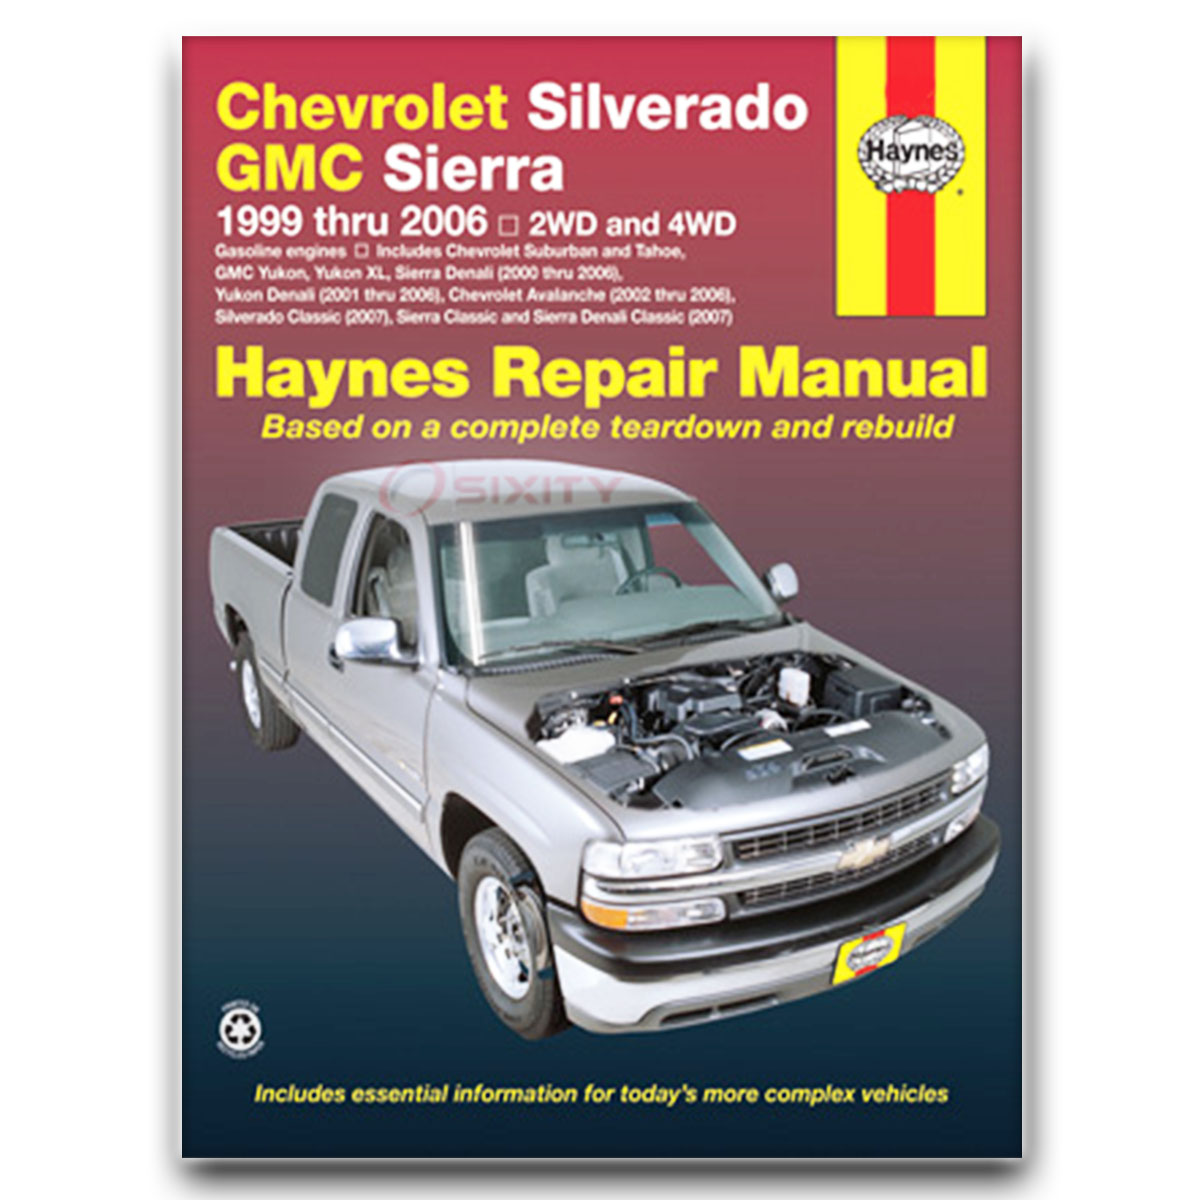 Haynes Repair Manual for GMC Yukon XL 1500 SL Denali SLT SLE Shop Service te